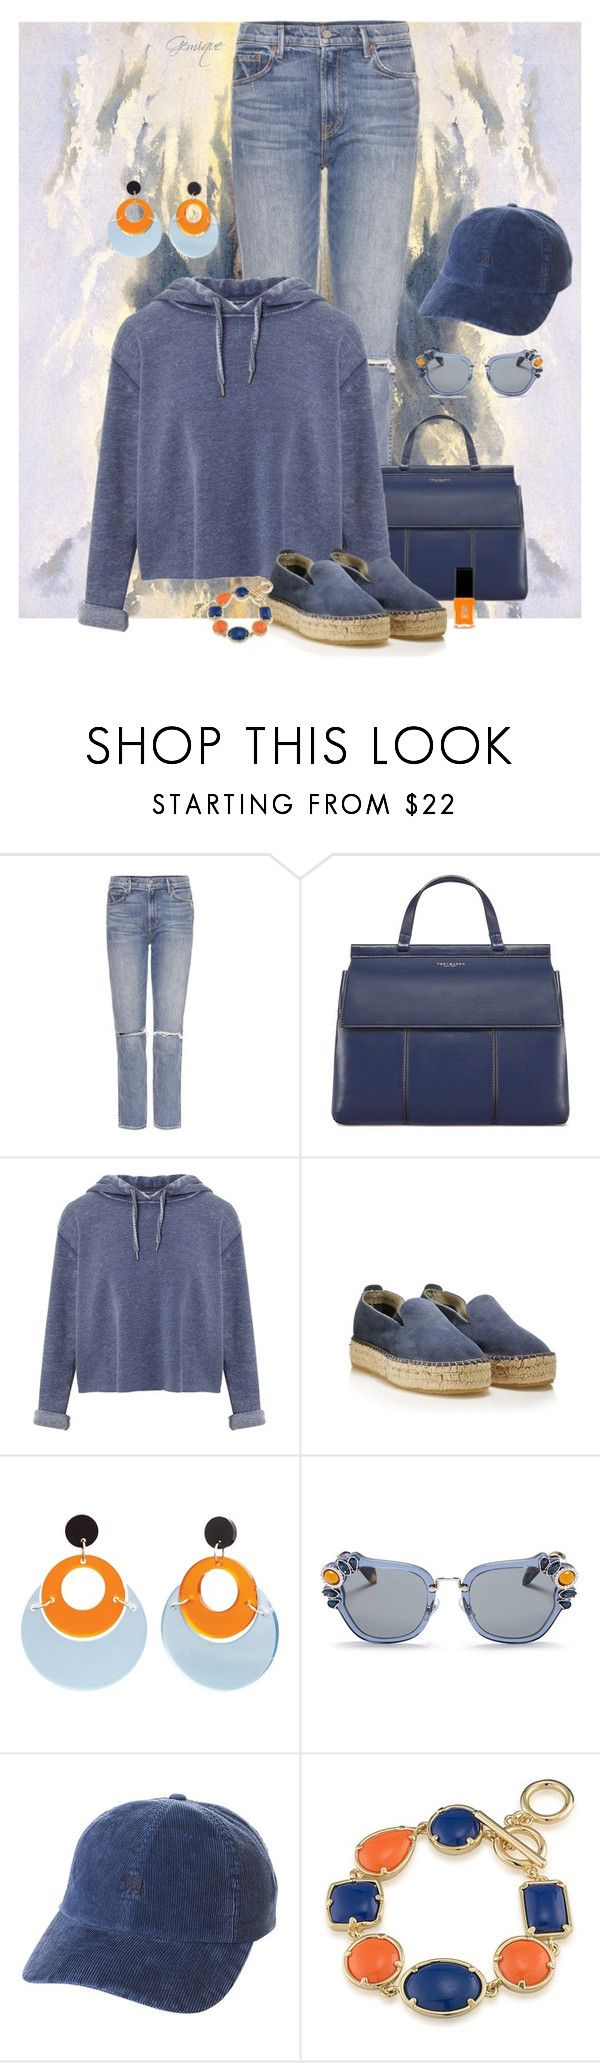 """Hang Out with Me"" by gemique ❤ liked on Polyvore featuring GRLFRND, Tory Burch, Miss Selfridge, Toolally, Miu Miu, Element, 1st & Gorgeous by Carolee and Jin Soon"